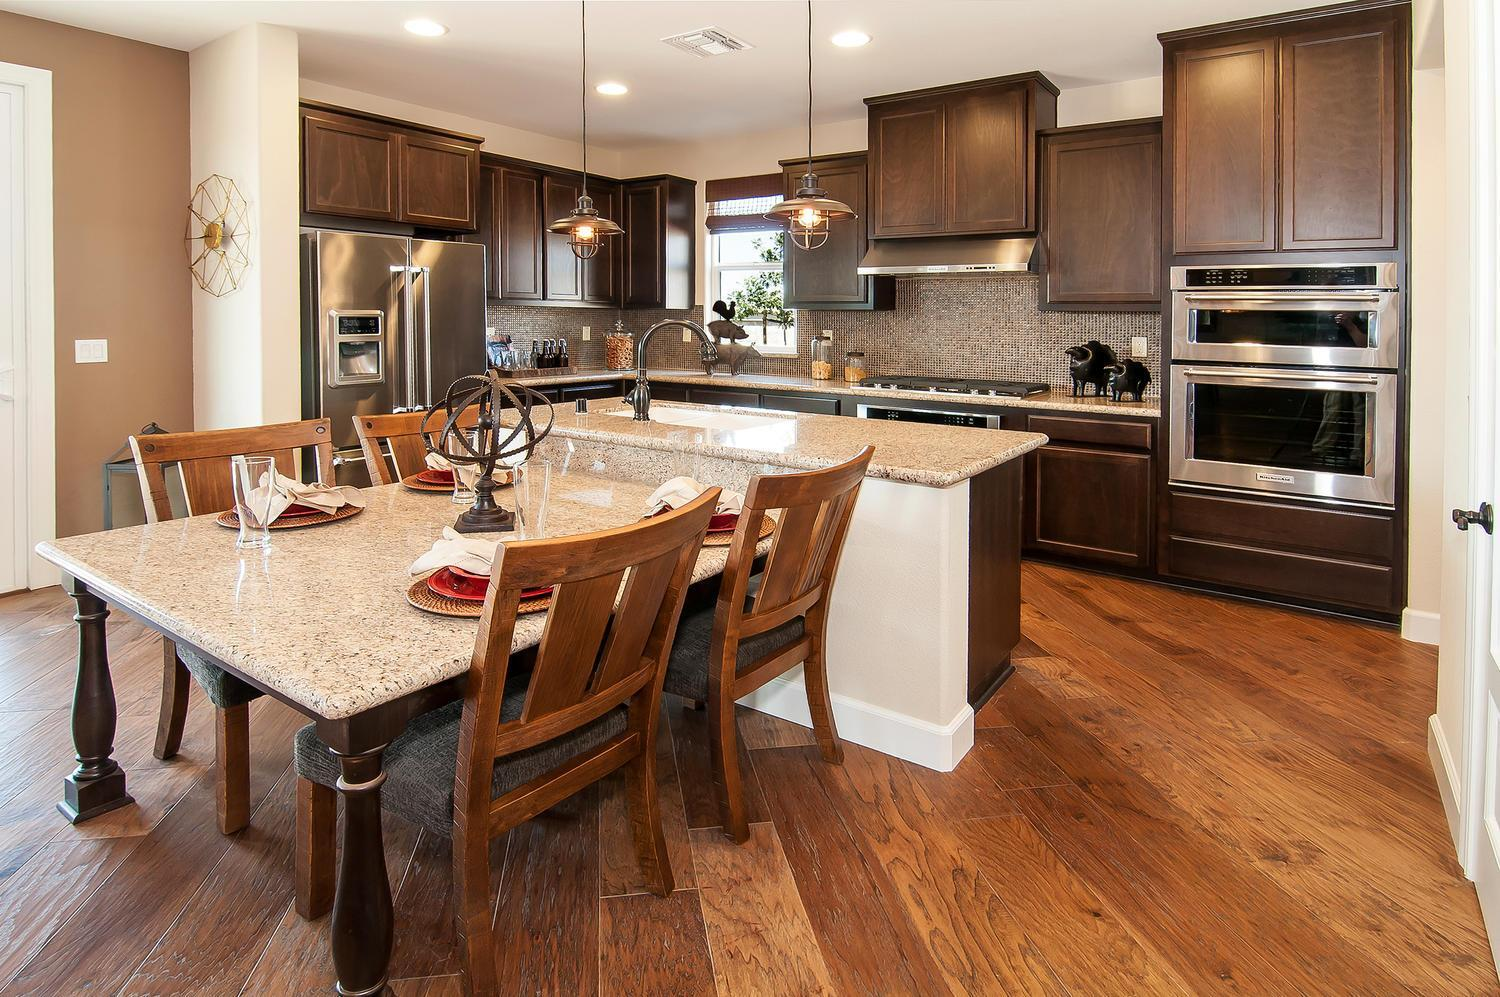 Kitchen featured in the Residence 7 By Legacy Homes in Santa Cruz, CA